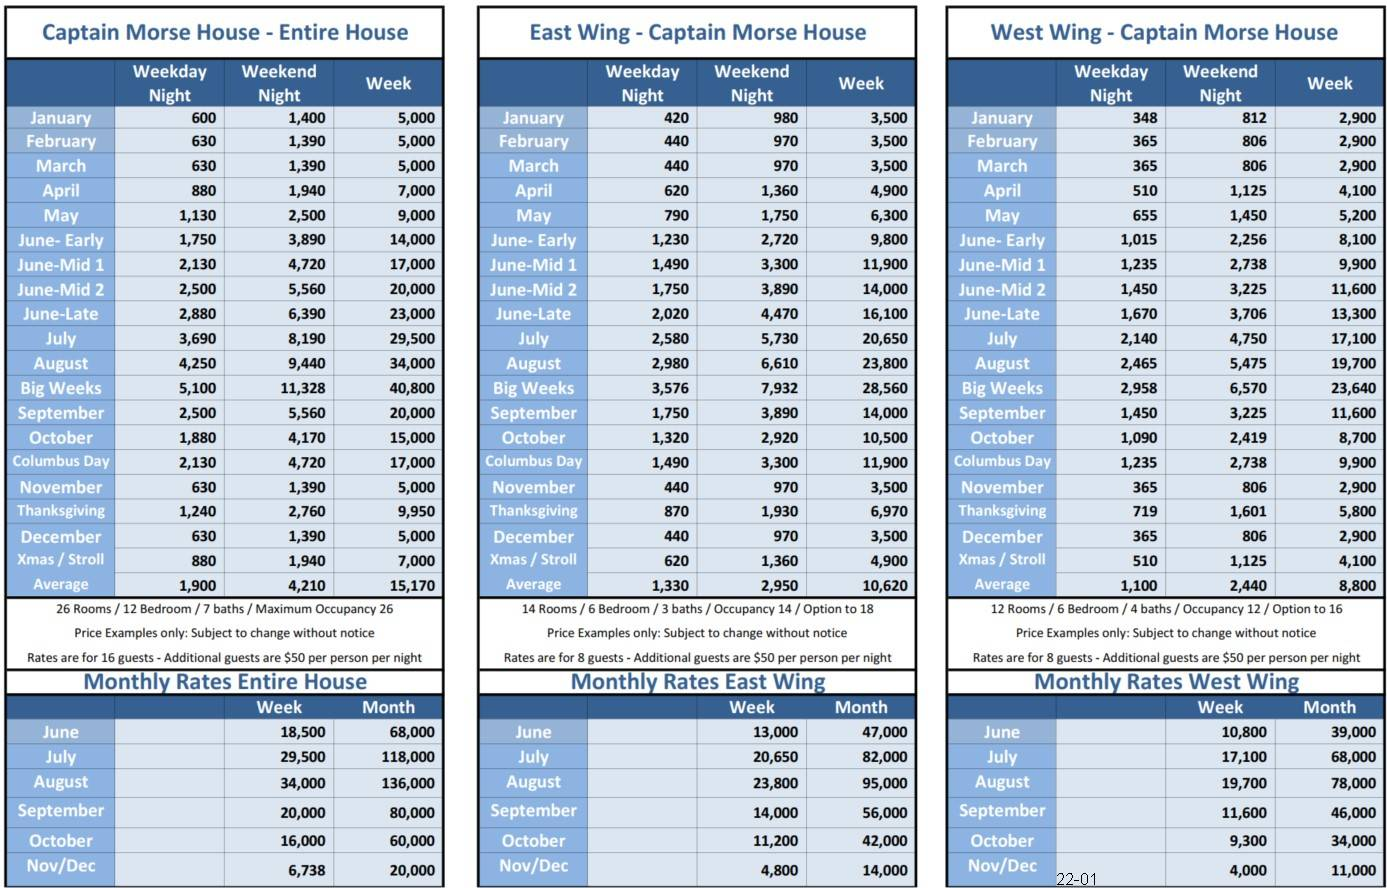 Rates by month for the Captain Morse House